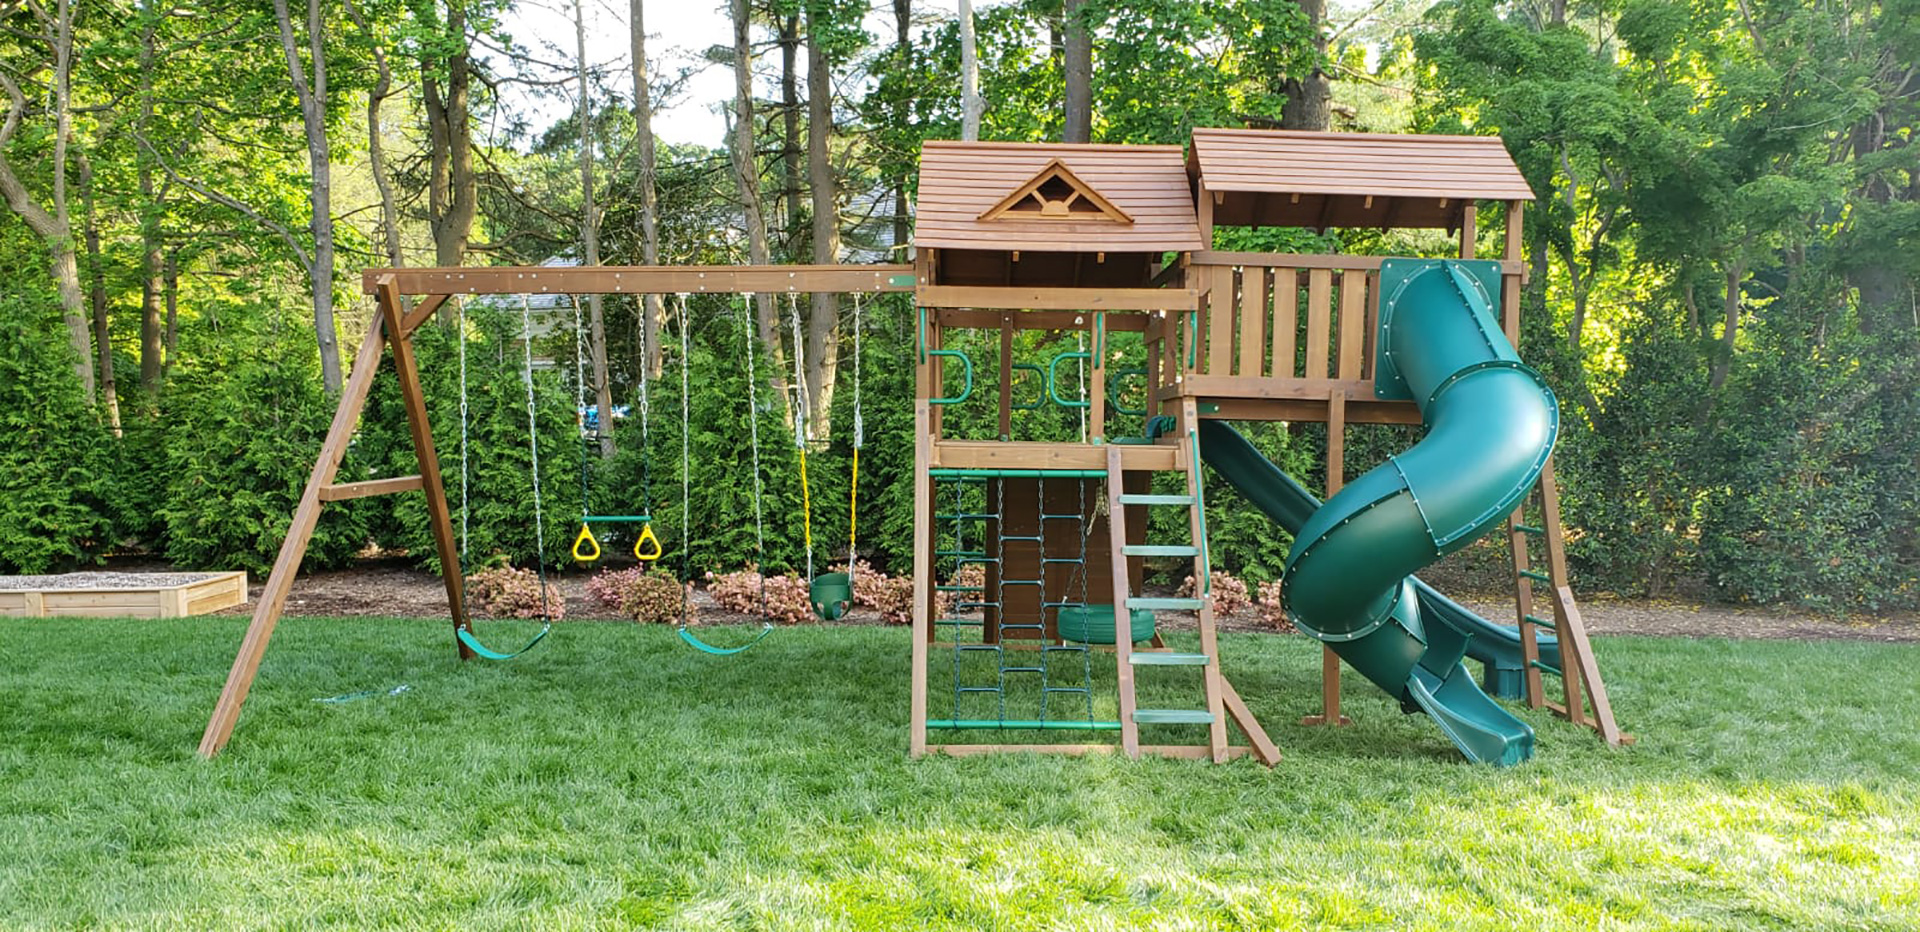 Wood swing set in Suffolk County NY.